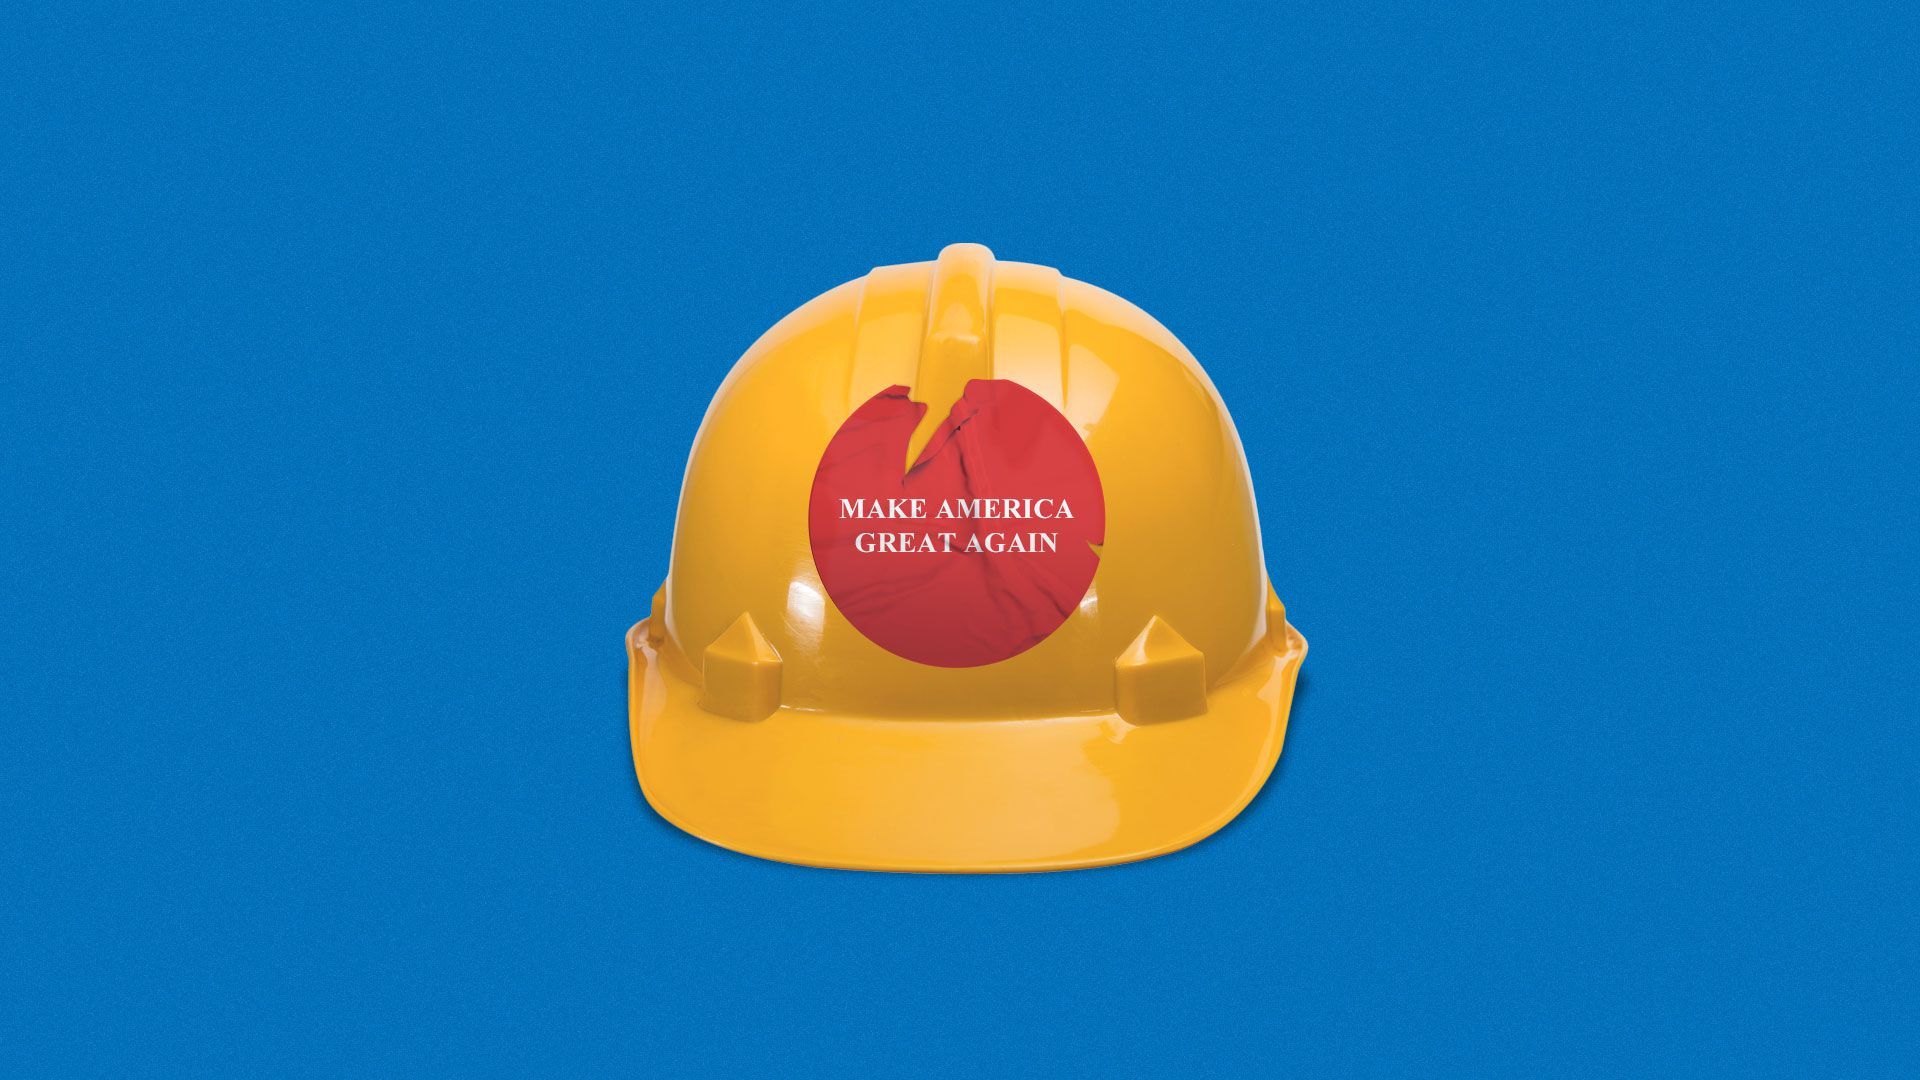 Illustration of hard hat with an old peeling Make America Great Again sticker.